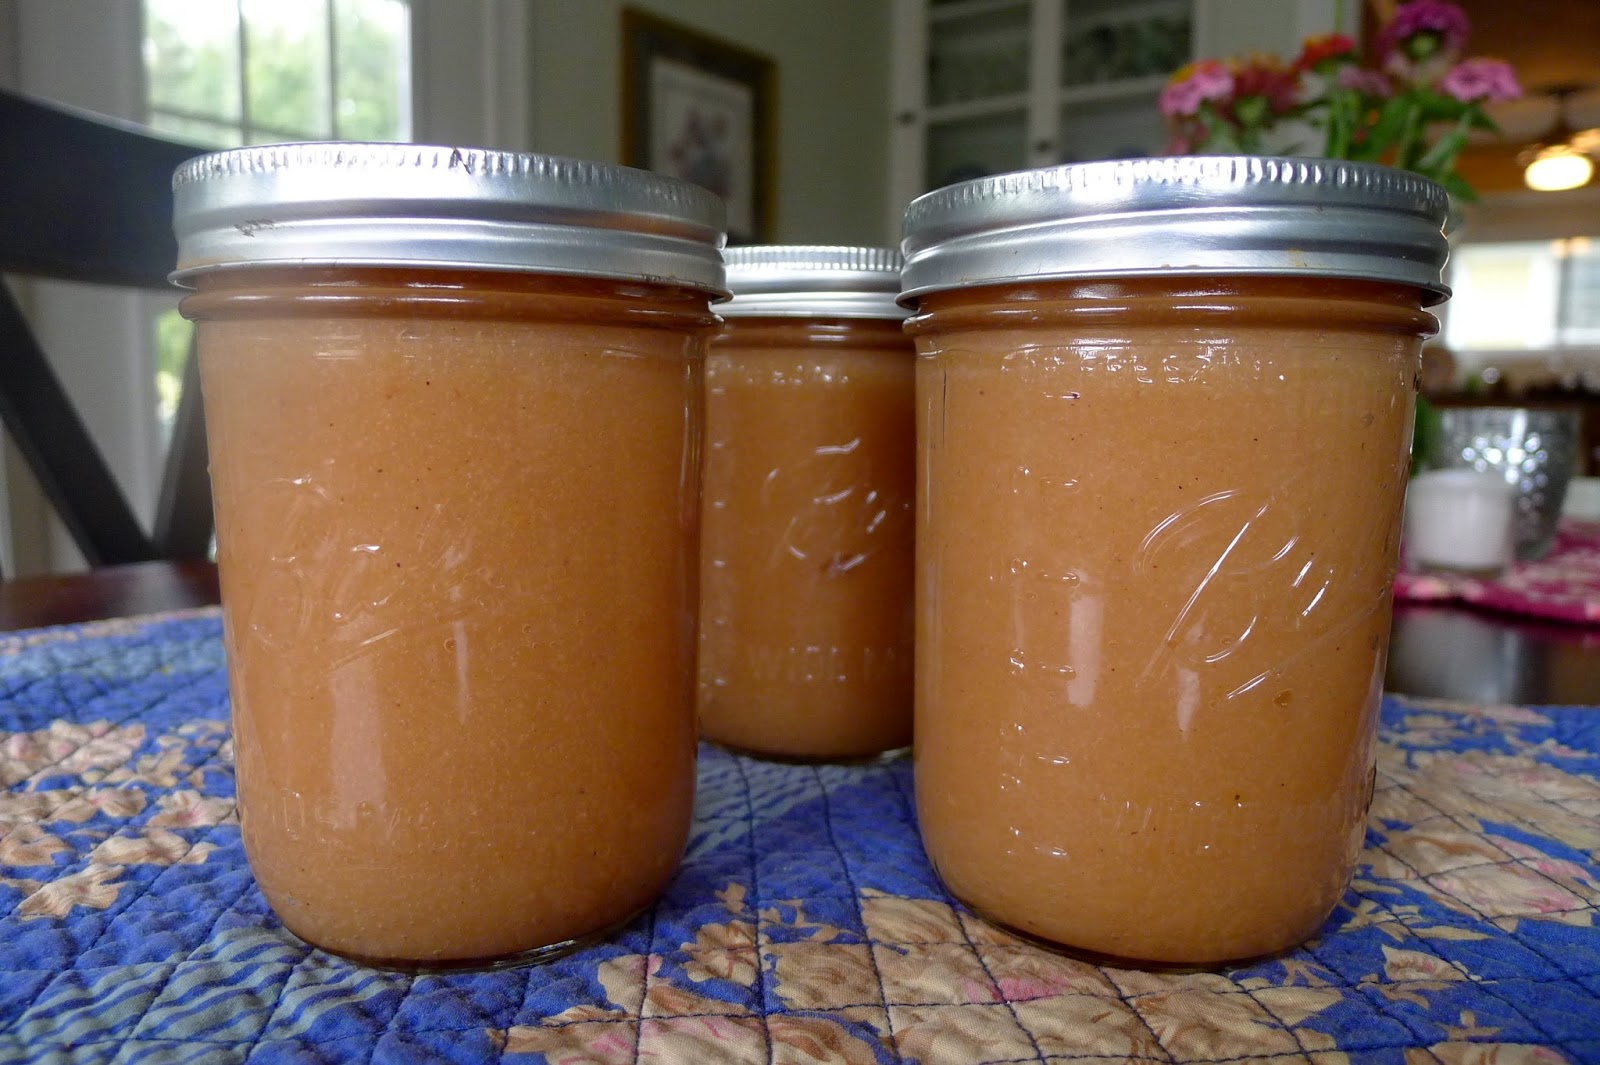 Spiced Apple Sauce recipe